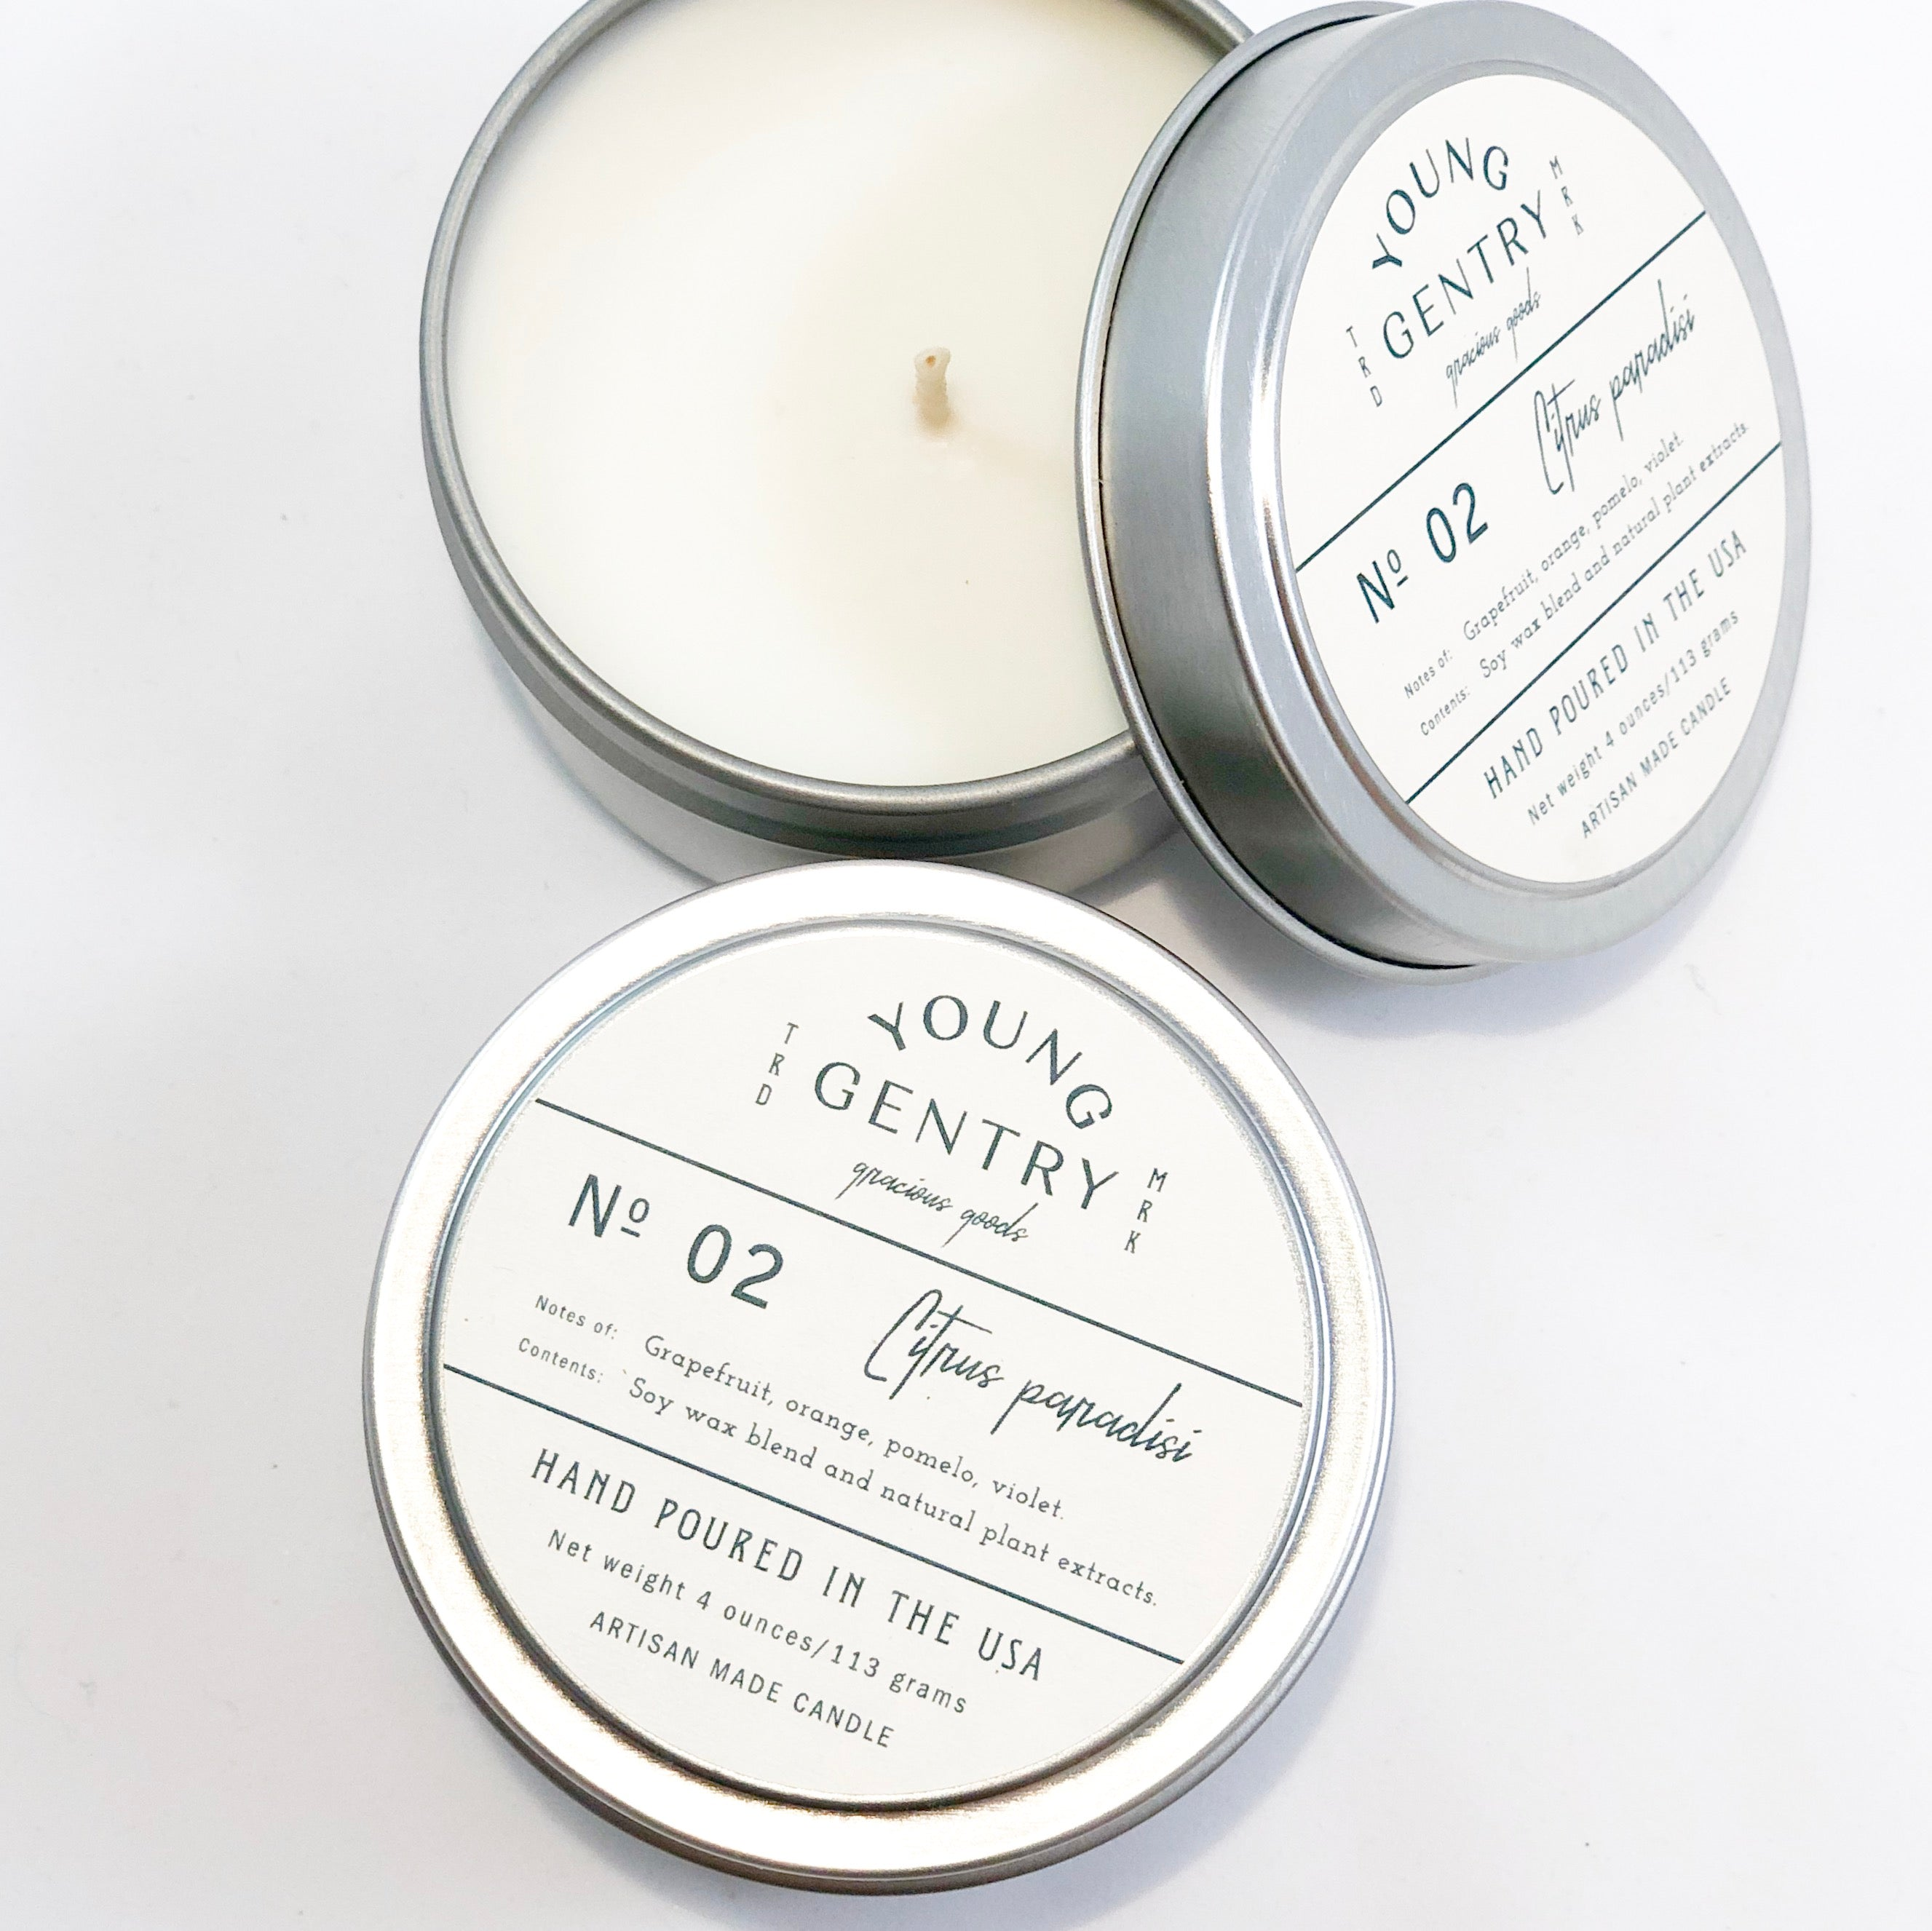 Apothecary Collection | No 02 | grapefruit, orange, pomelo & violet